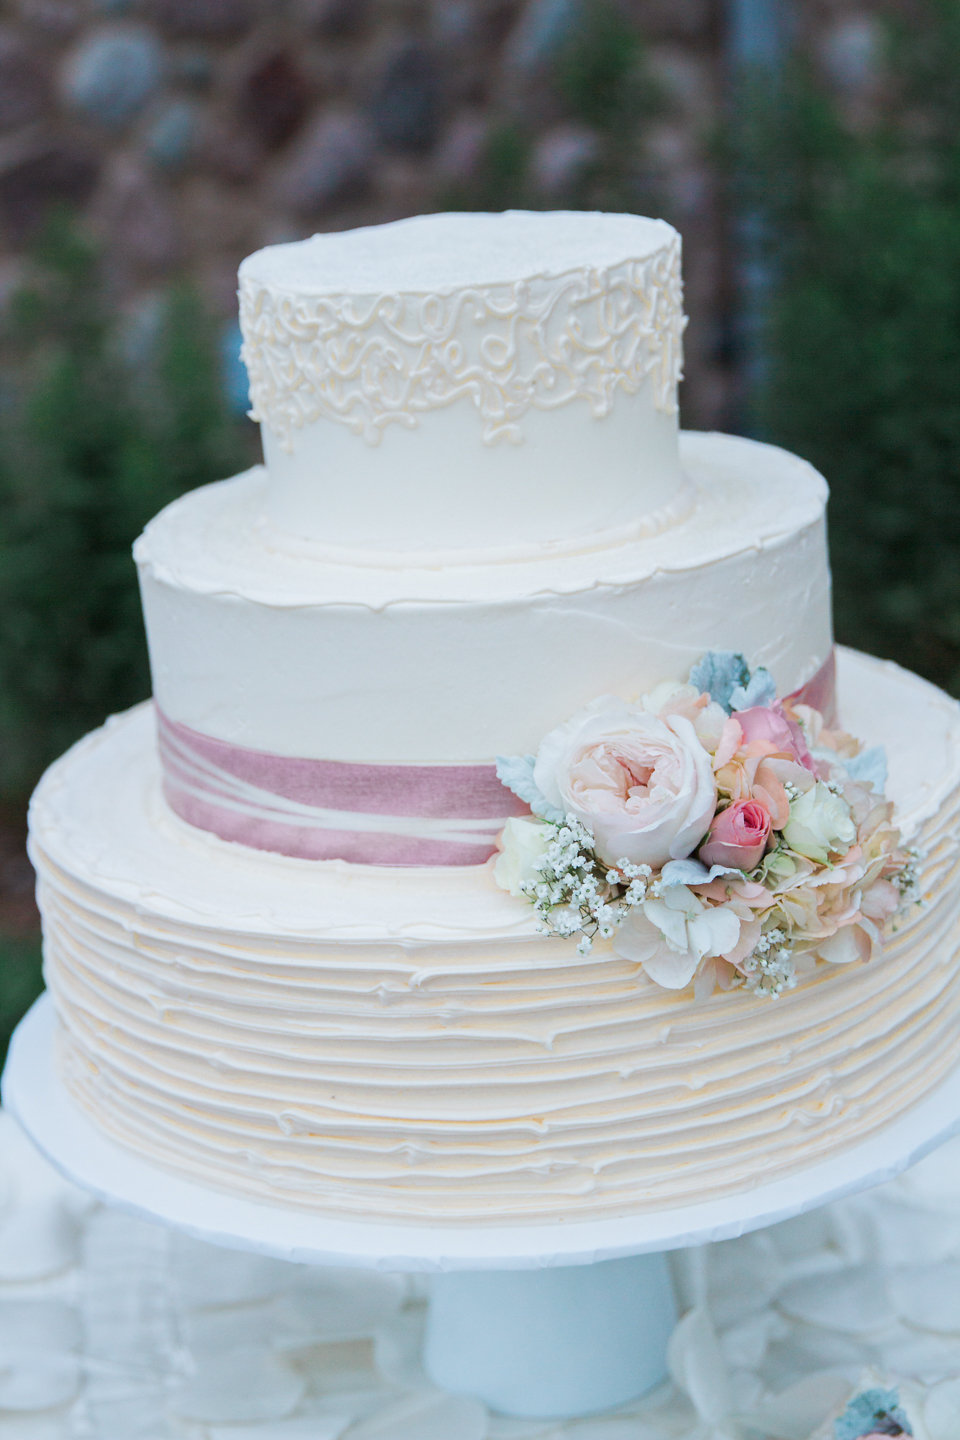 Ivory and blush buttercream wedding cake